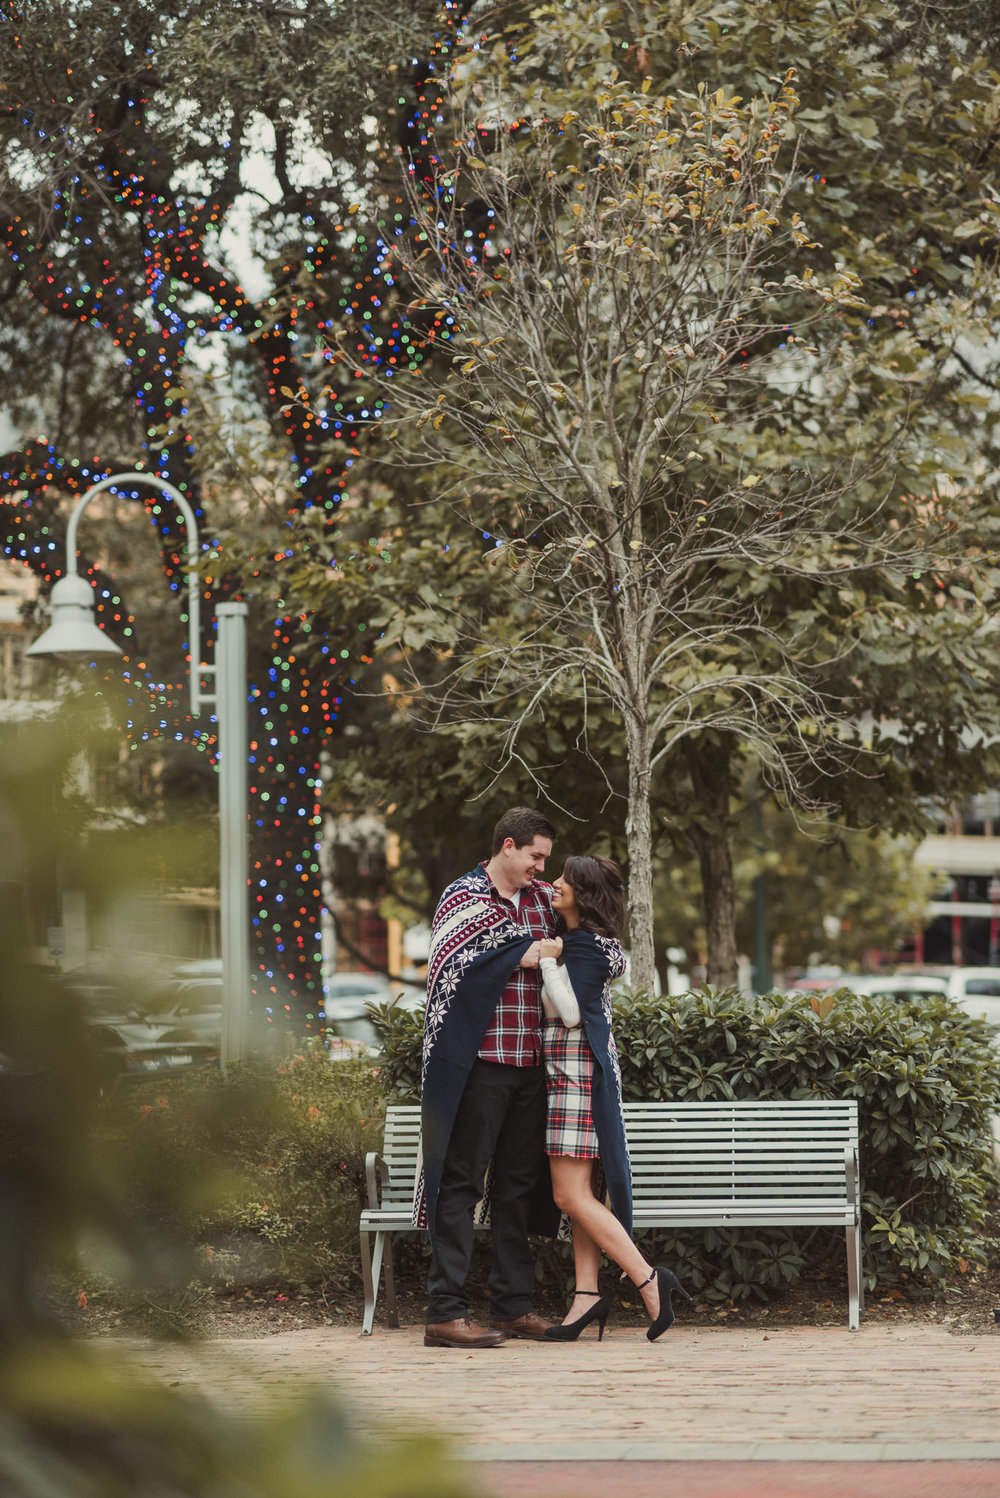 houston-main-street-lifestyle-colorful-holiday-engagement-photographer-market-square